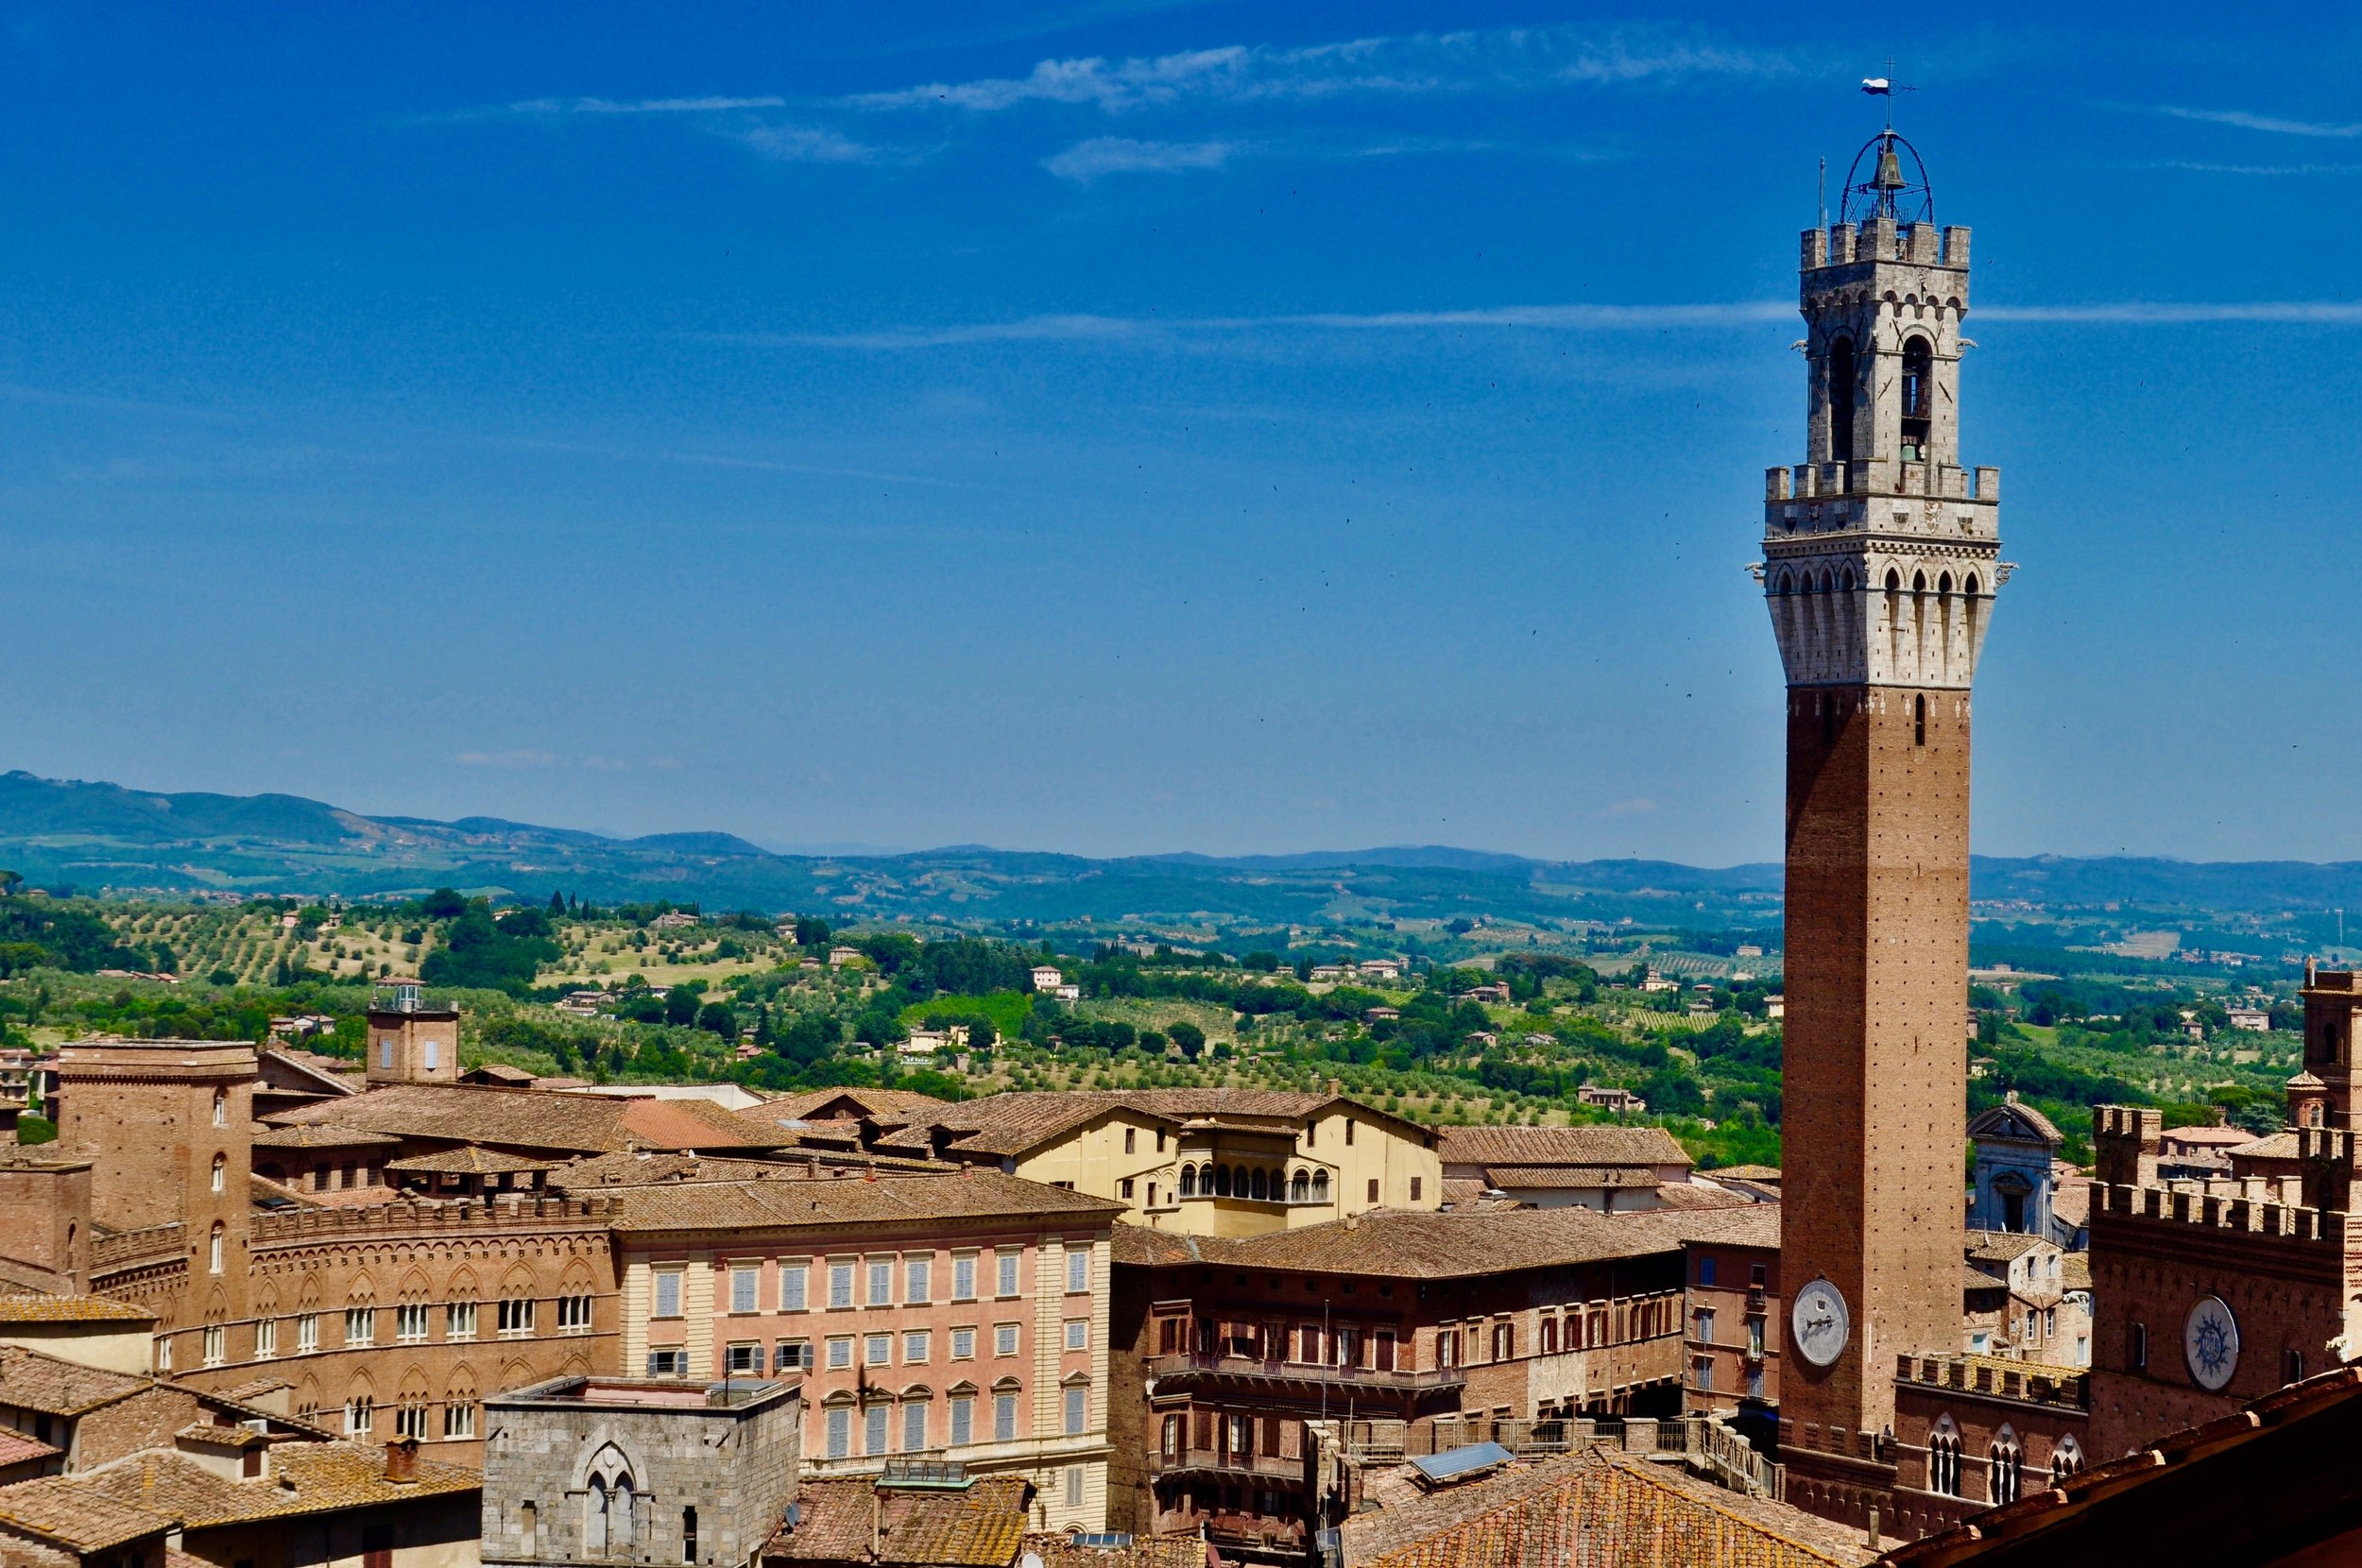 View of Tuscany from Siena Cathedral Roofs - Scenic Day Trip to Siena from Florence, Italy - A Happy Passport